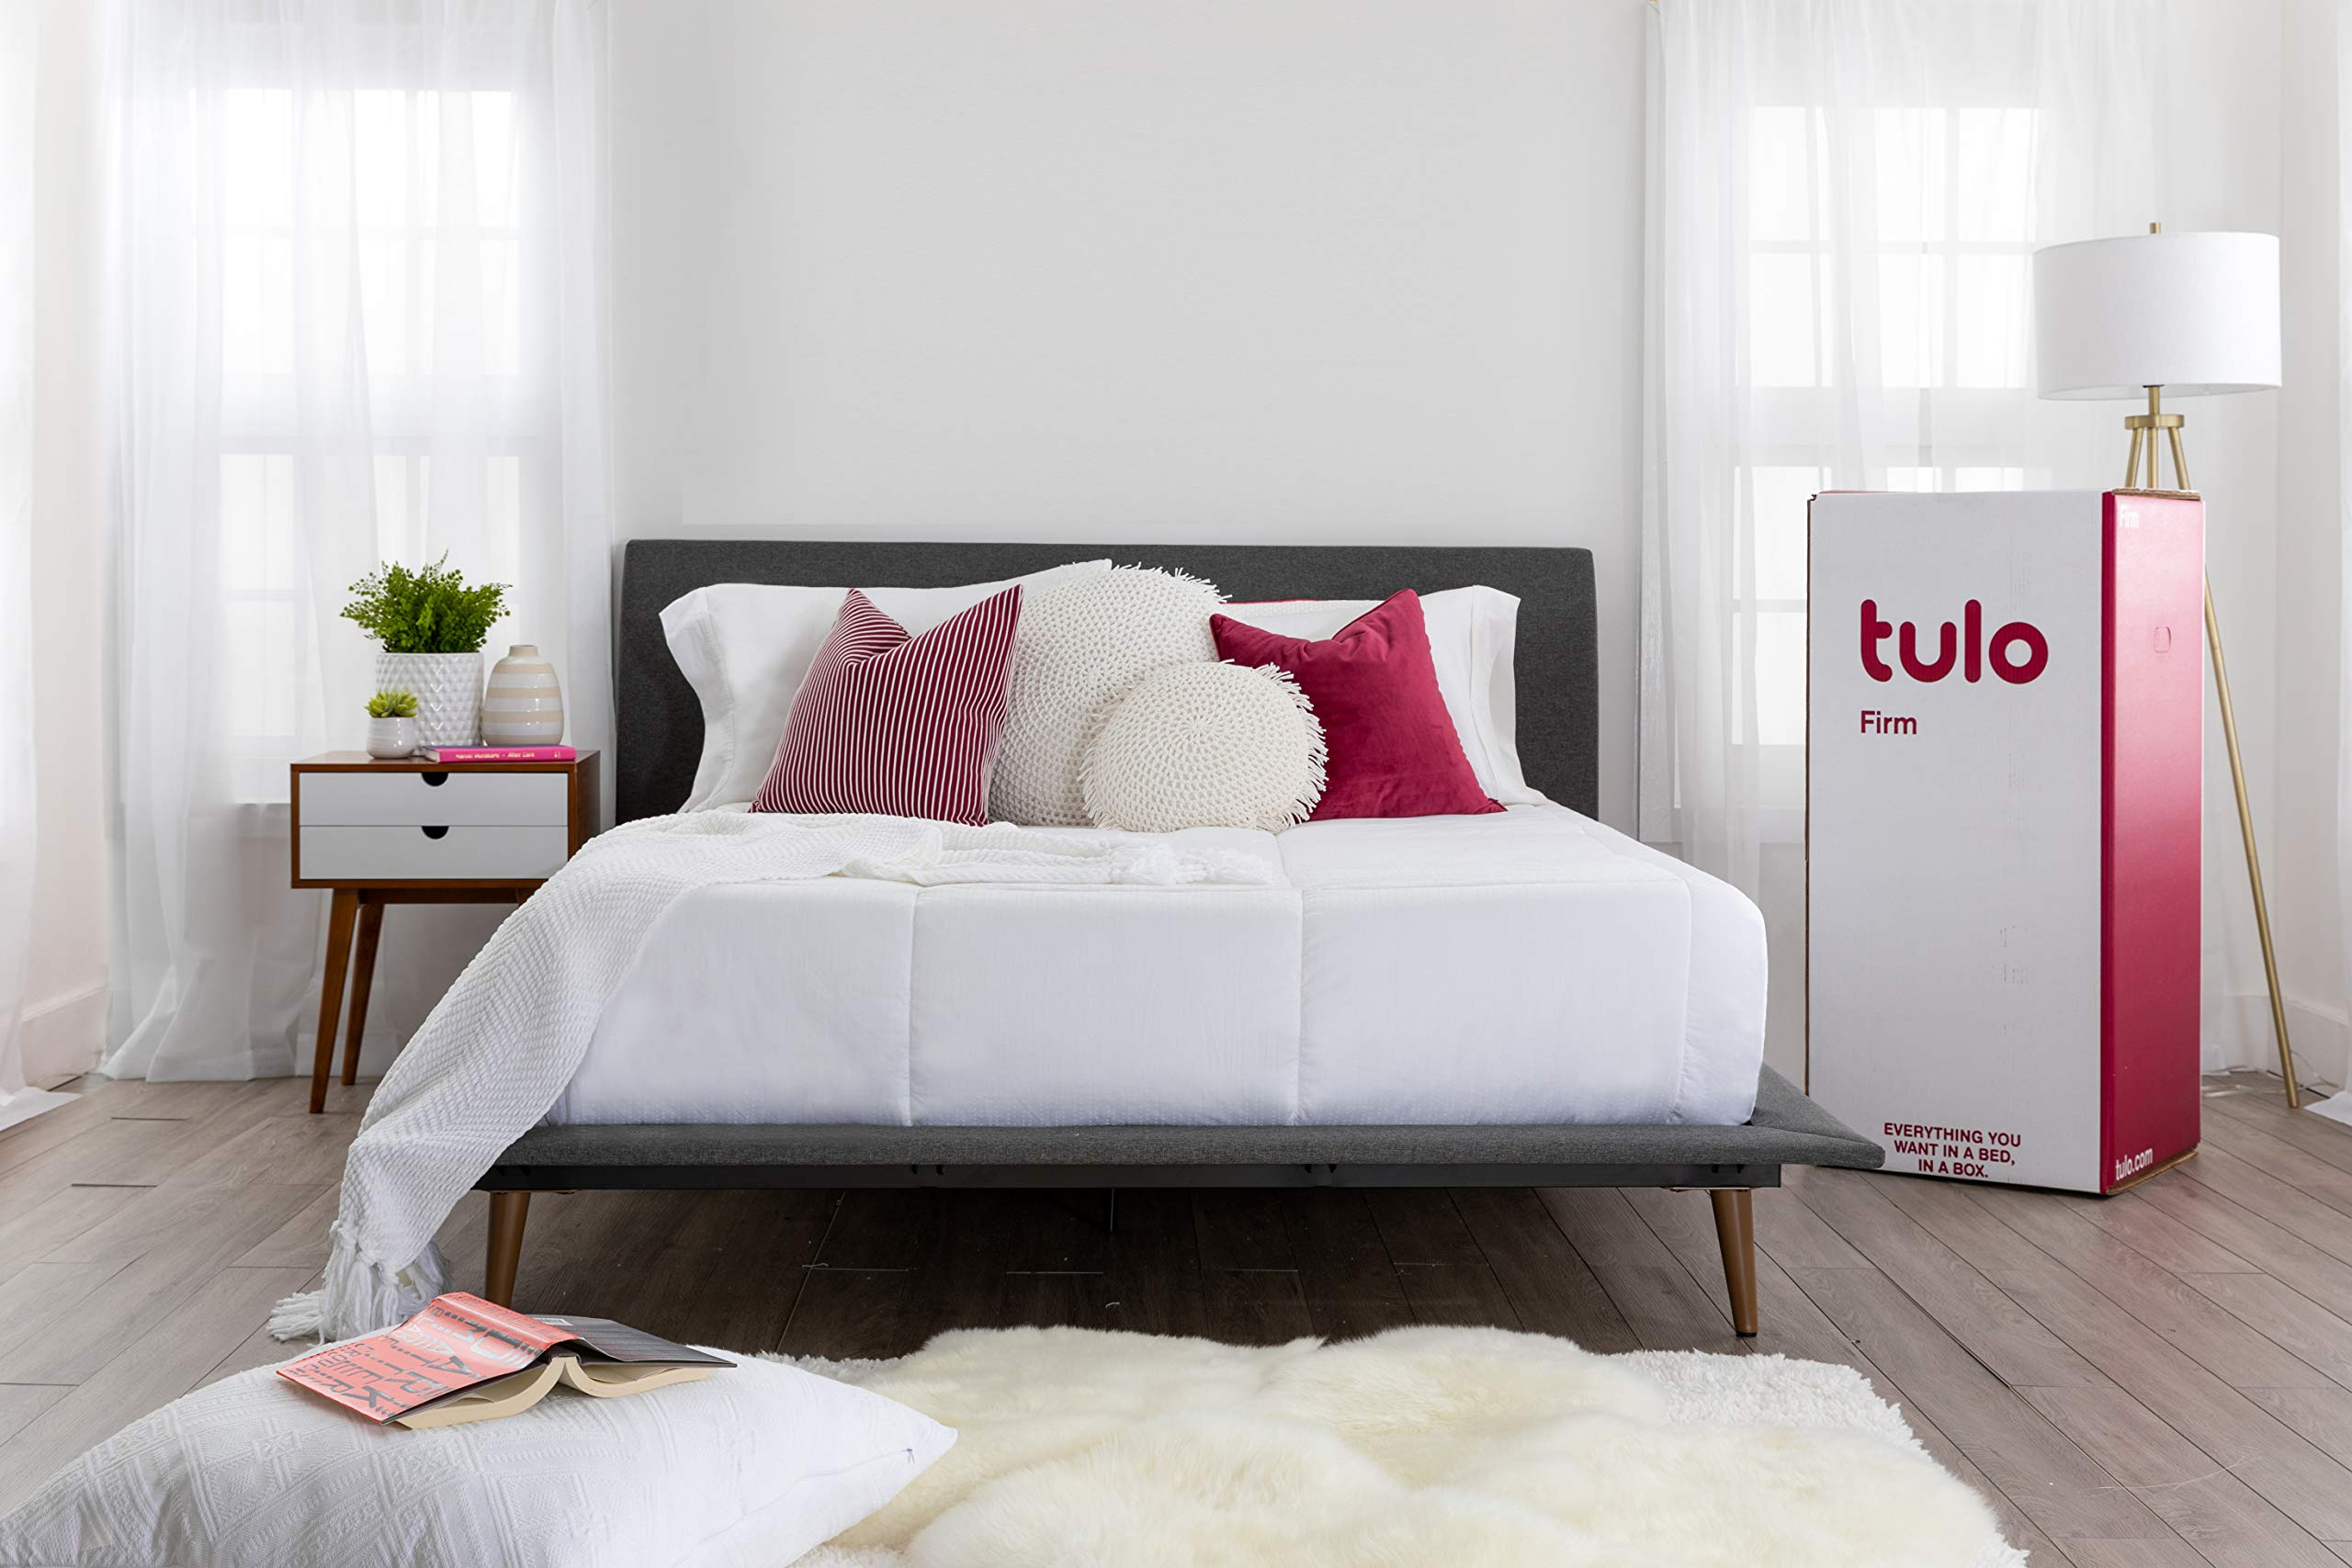 Mattress by tulo, Pick your Comfort Level, Firm Queen Size 10 inch, Bed in a Box, Great for Sleep and Optimal Body Support by Tulo